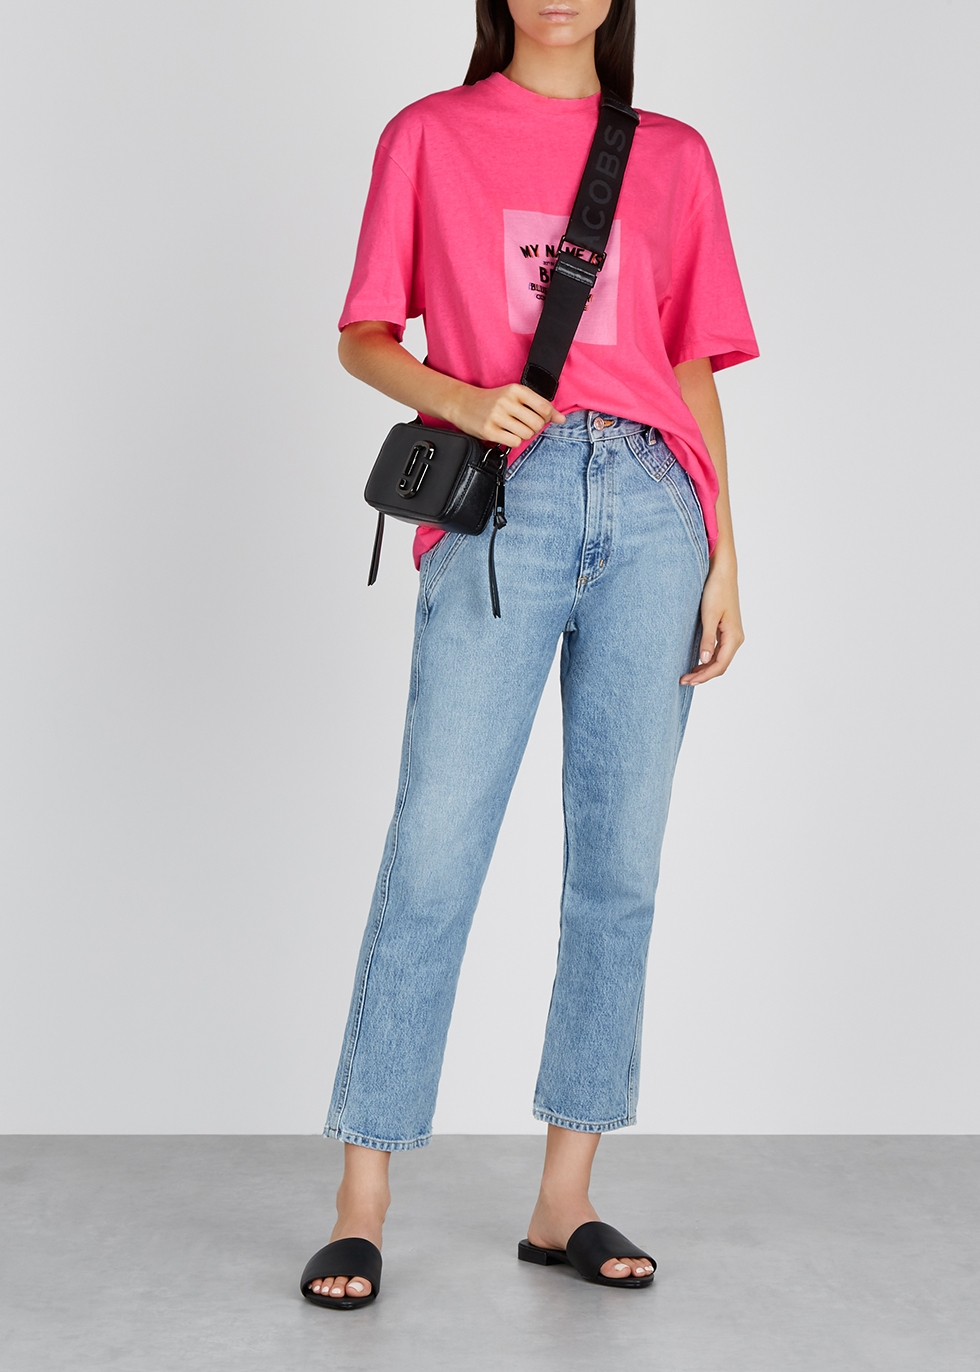 Neon pink printed cotton T-shirt - SJYP